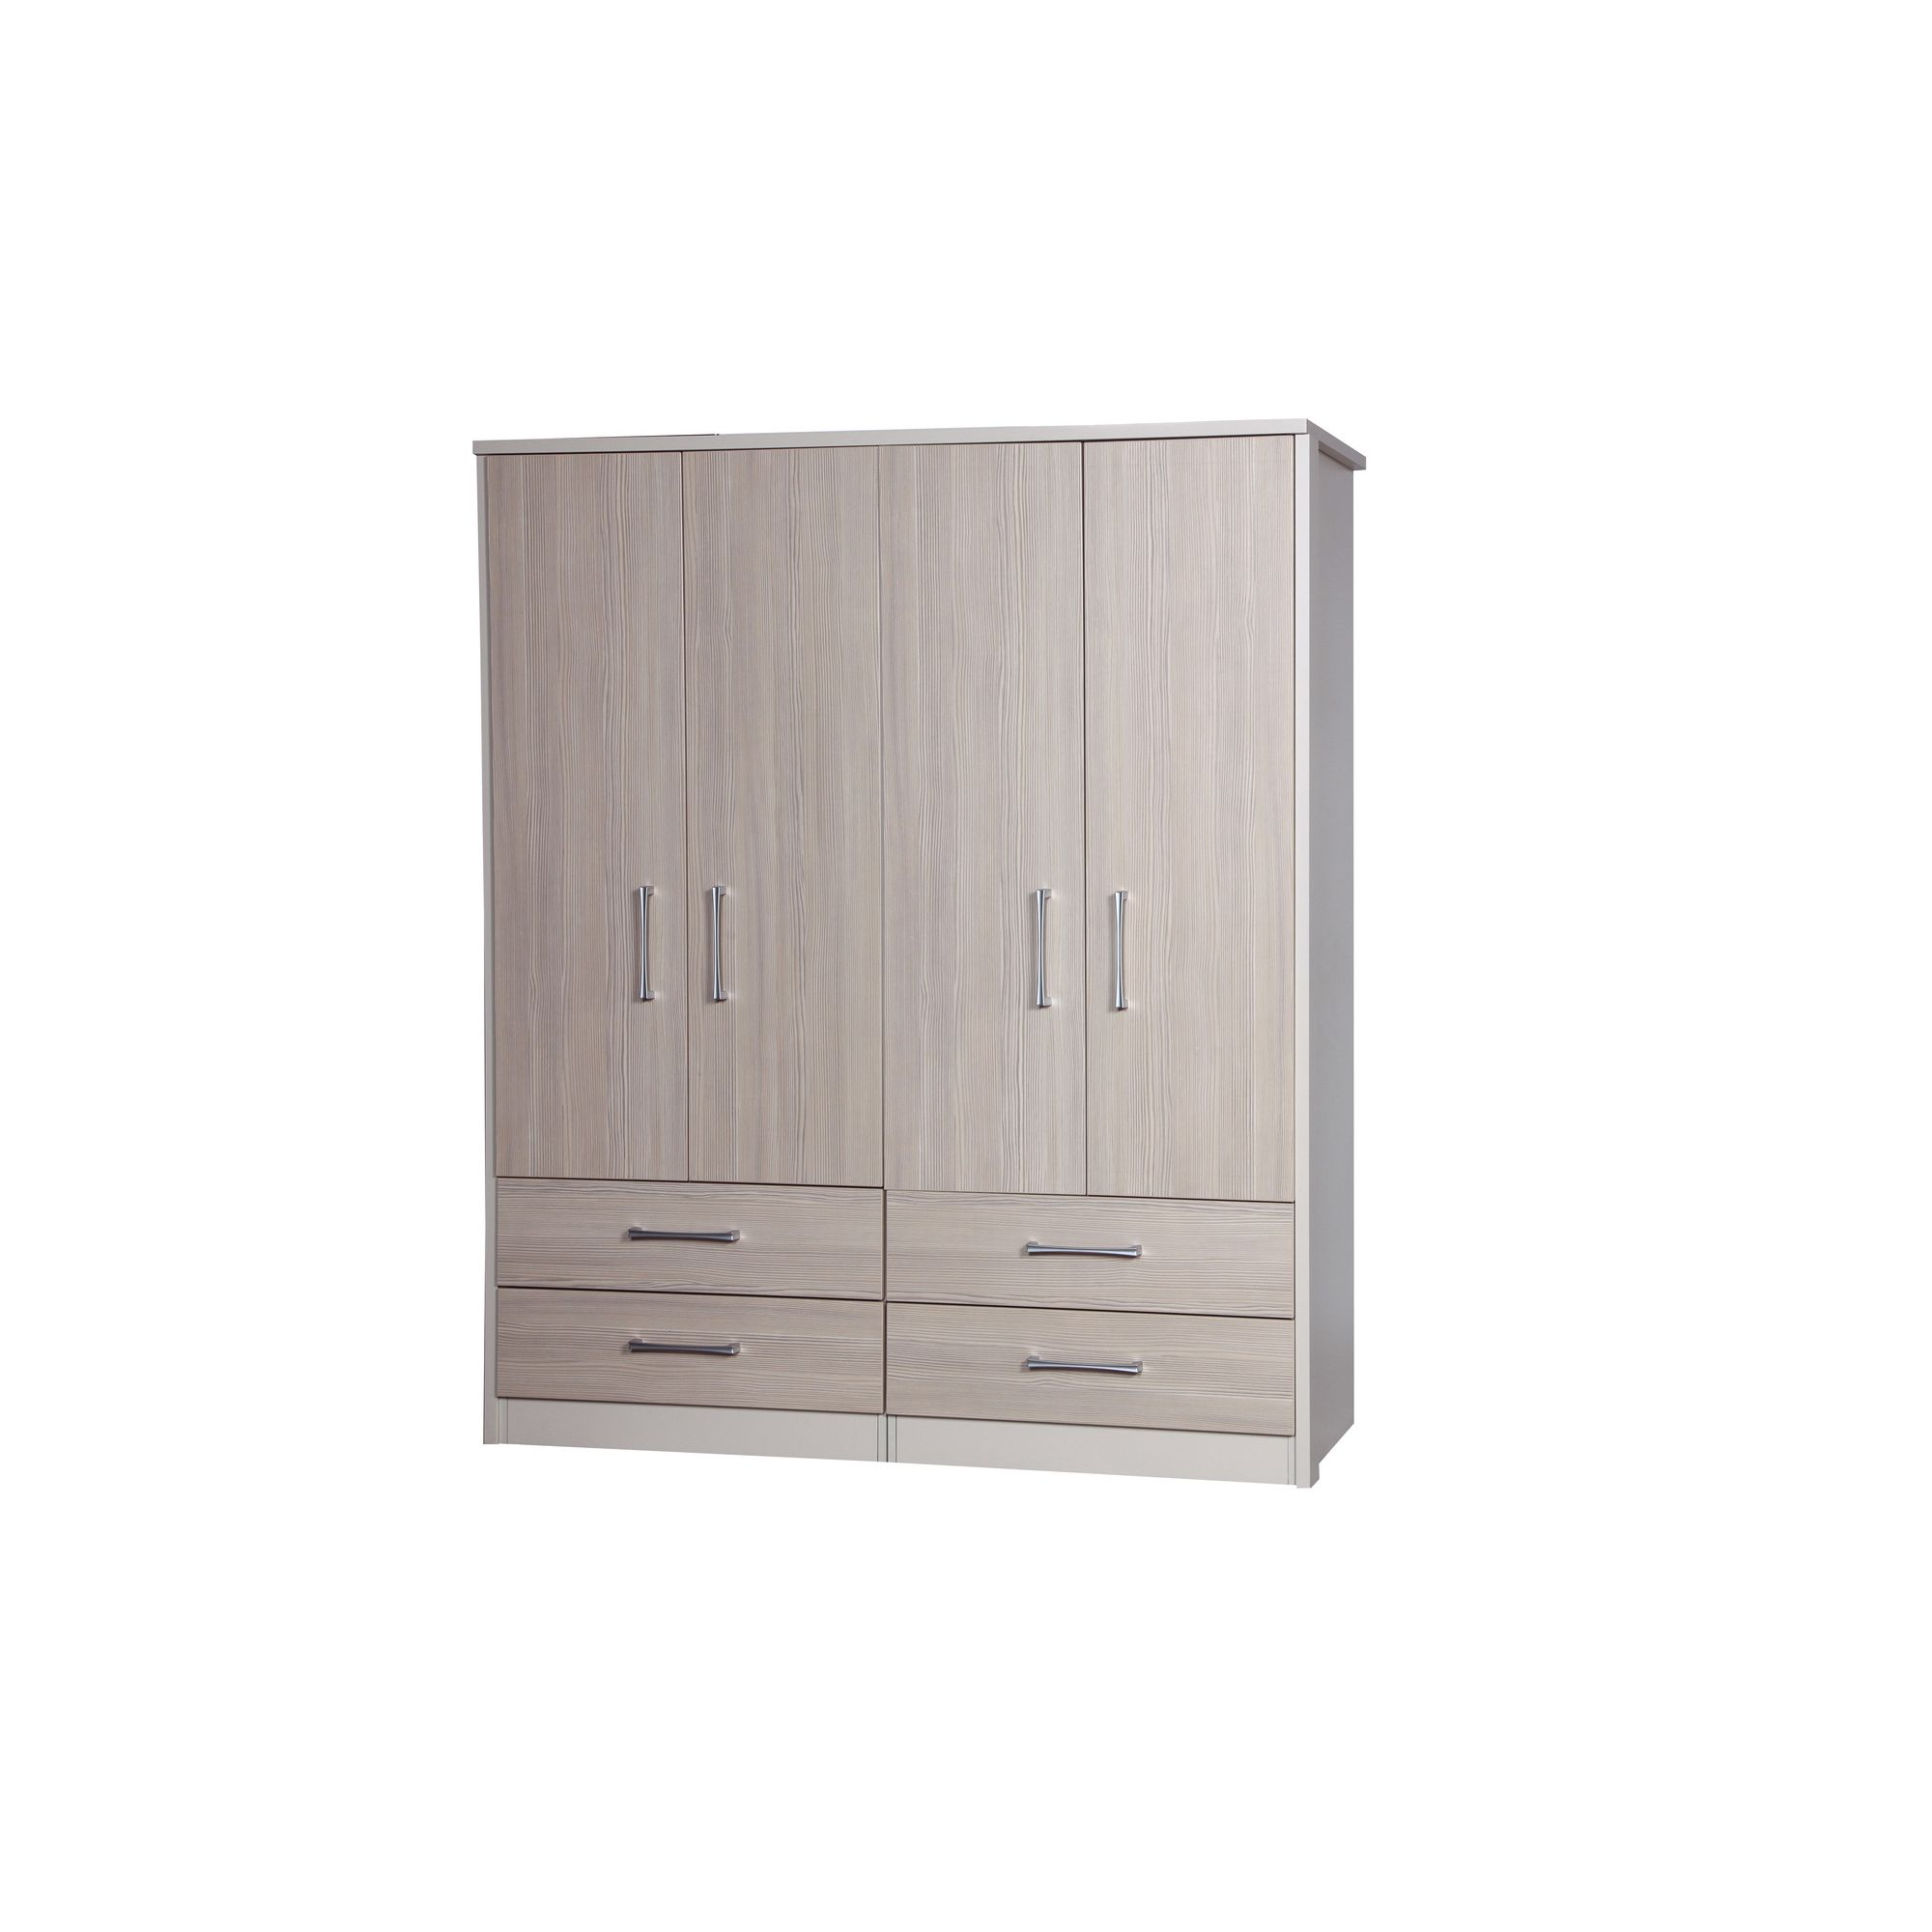 Alto Furniture Avola 4 Door Combi Wardrobe - Cream Carcass With Champagne Avola at Tesco Direct